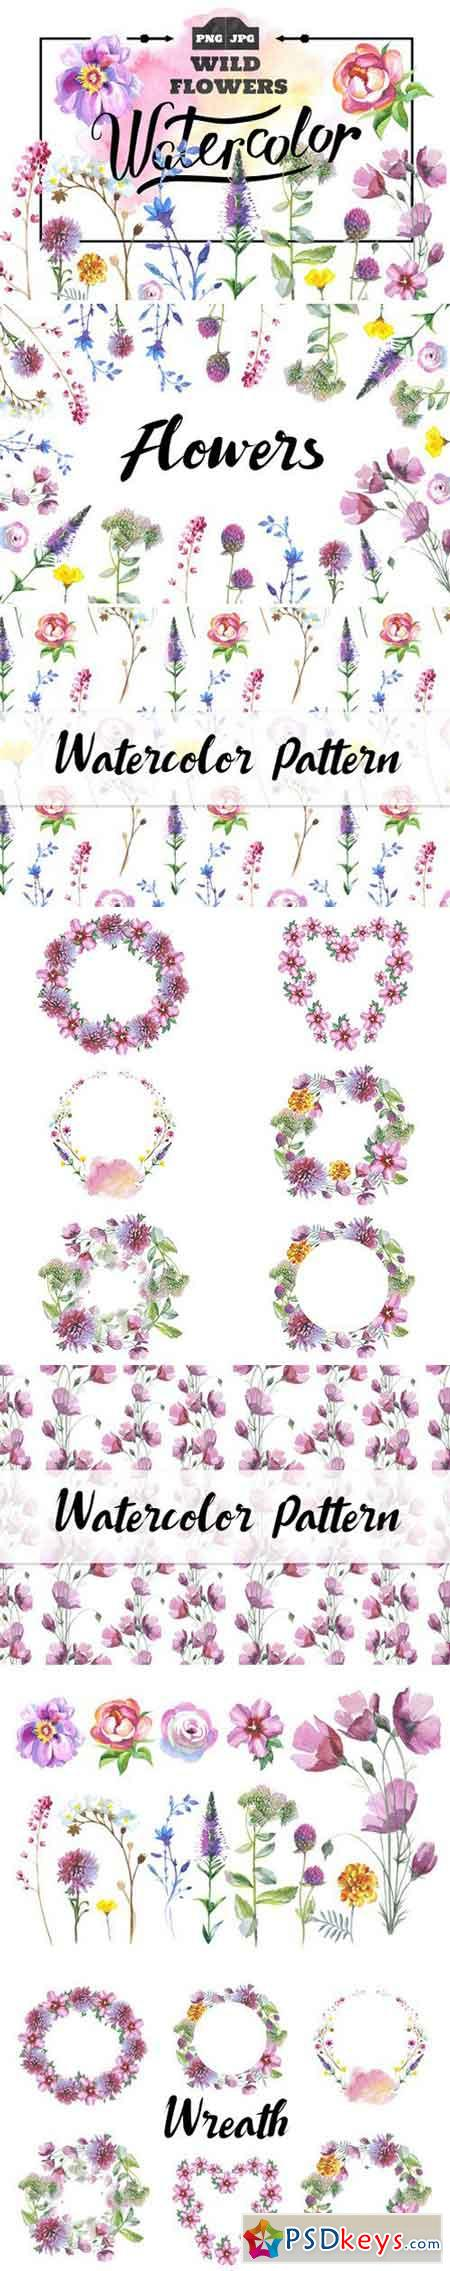 Wild Flowers watercolor PNG set